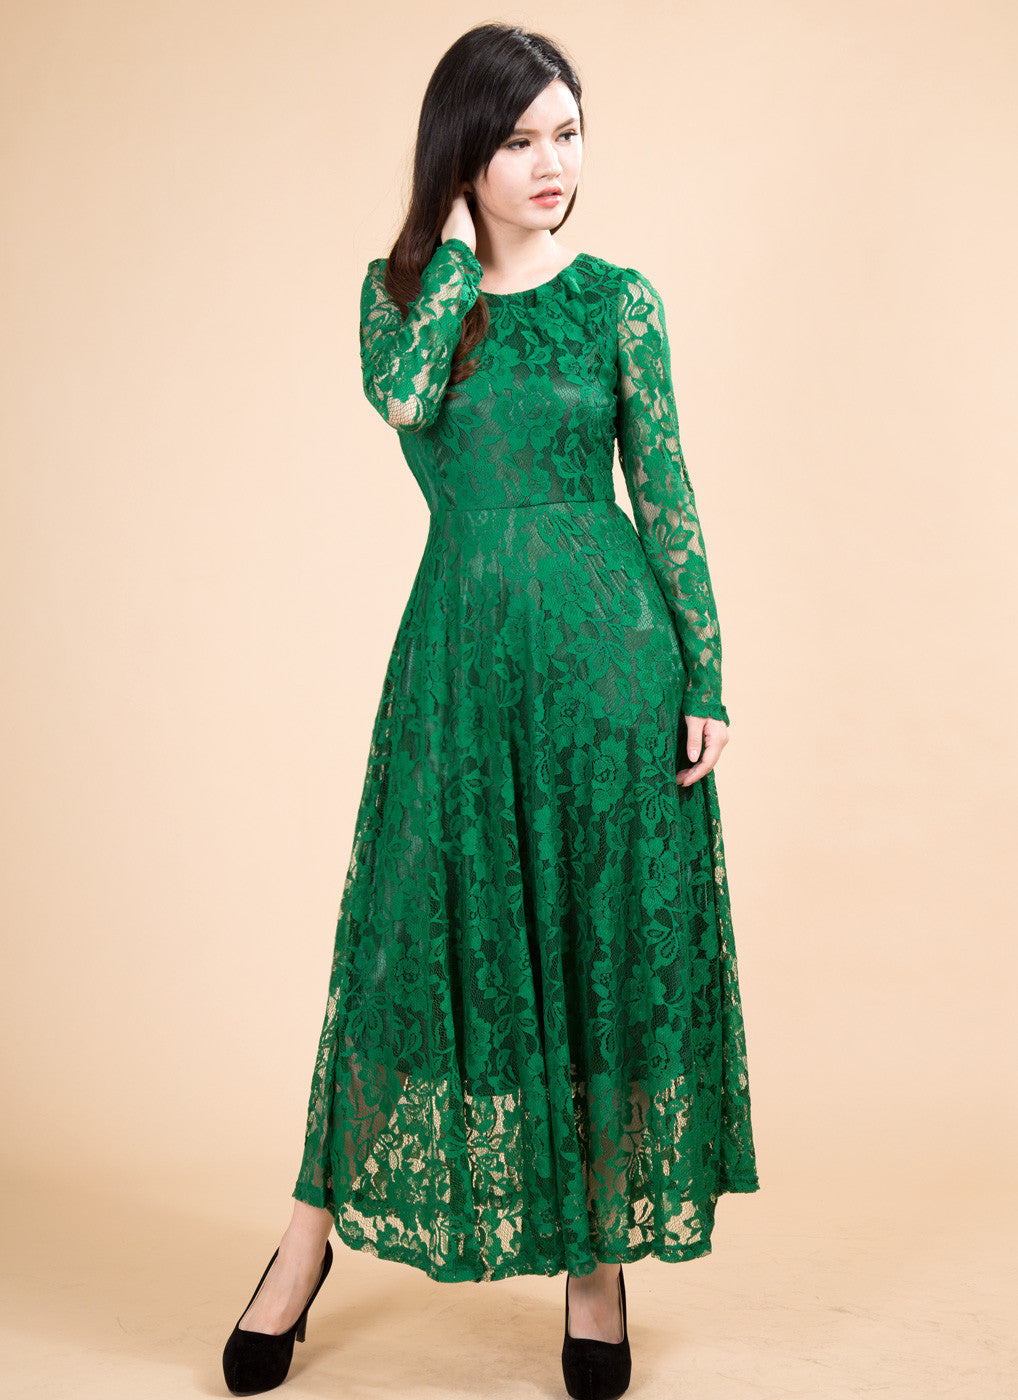 e3035590f1 Green Classic Boat Neck Maxi Length Floral Lace Prom Dress/ Maxi Lace  Evening Dress with